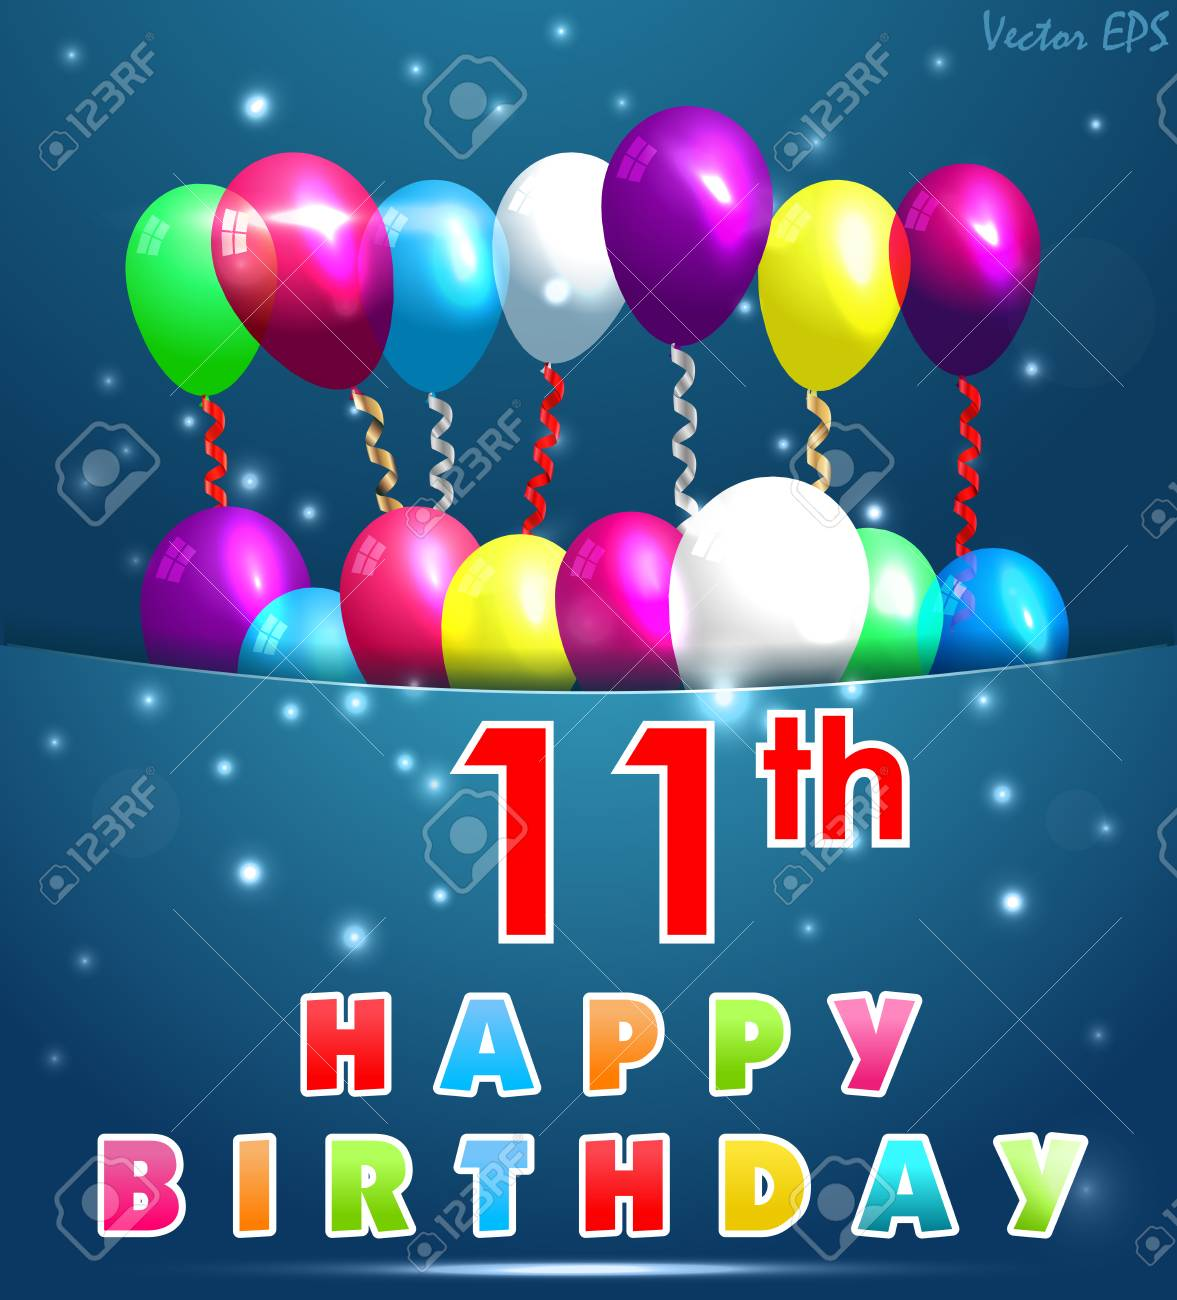 11 Year Happy Birthday Card With Balloons And Ribbons 11th